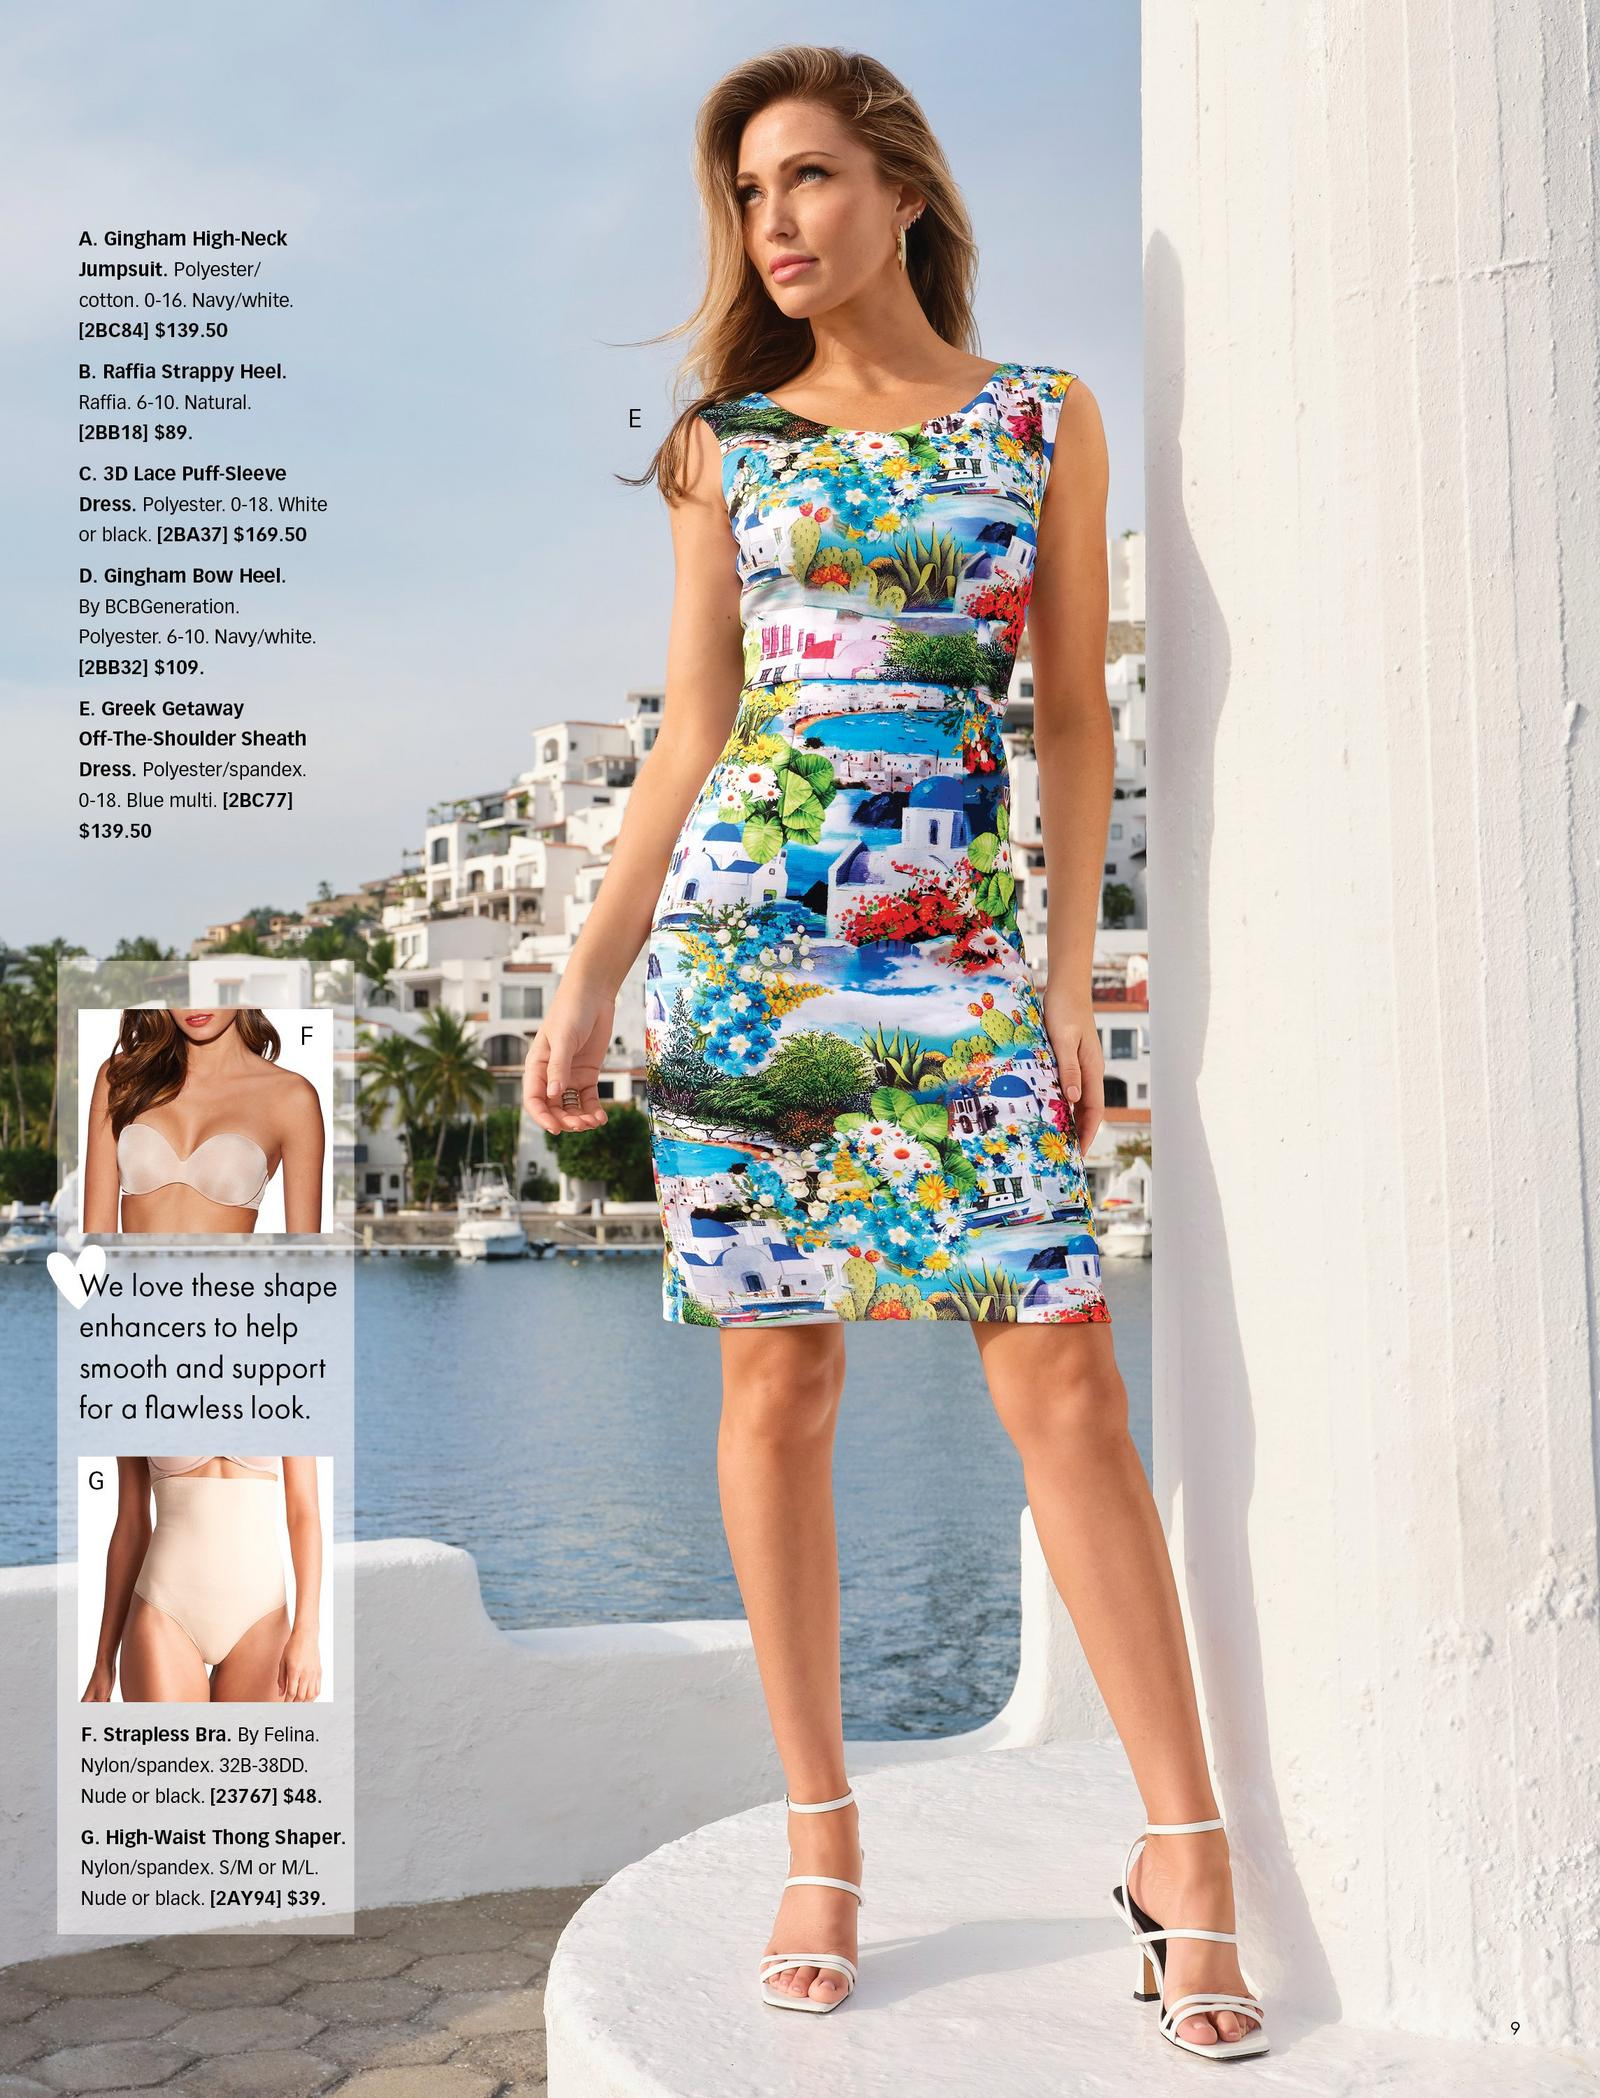 model wearing a sleeveless greek getaway print off-the-shoulder sheath dress and white strappy heels.